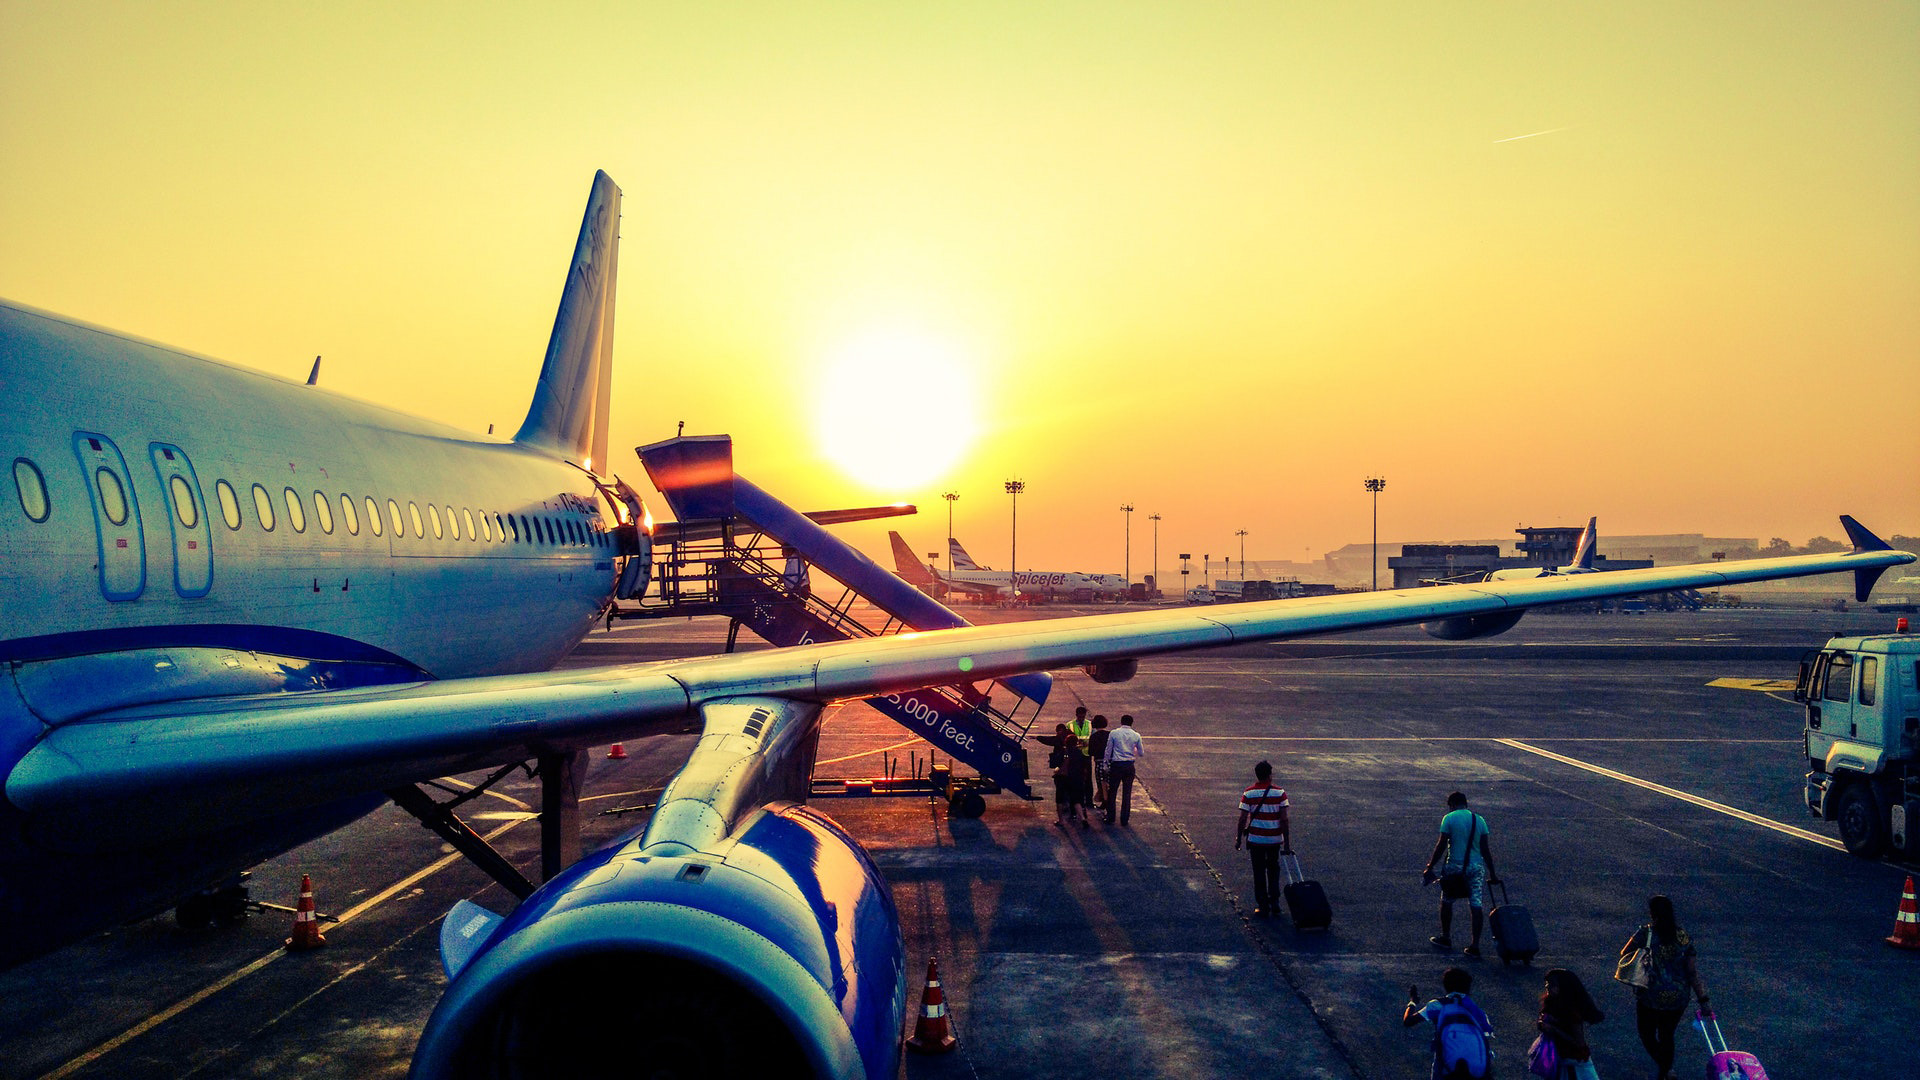 Boarding a plane at sunset